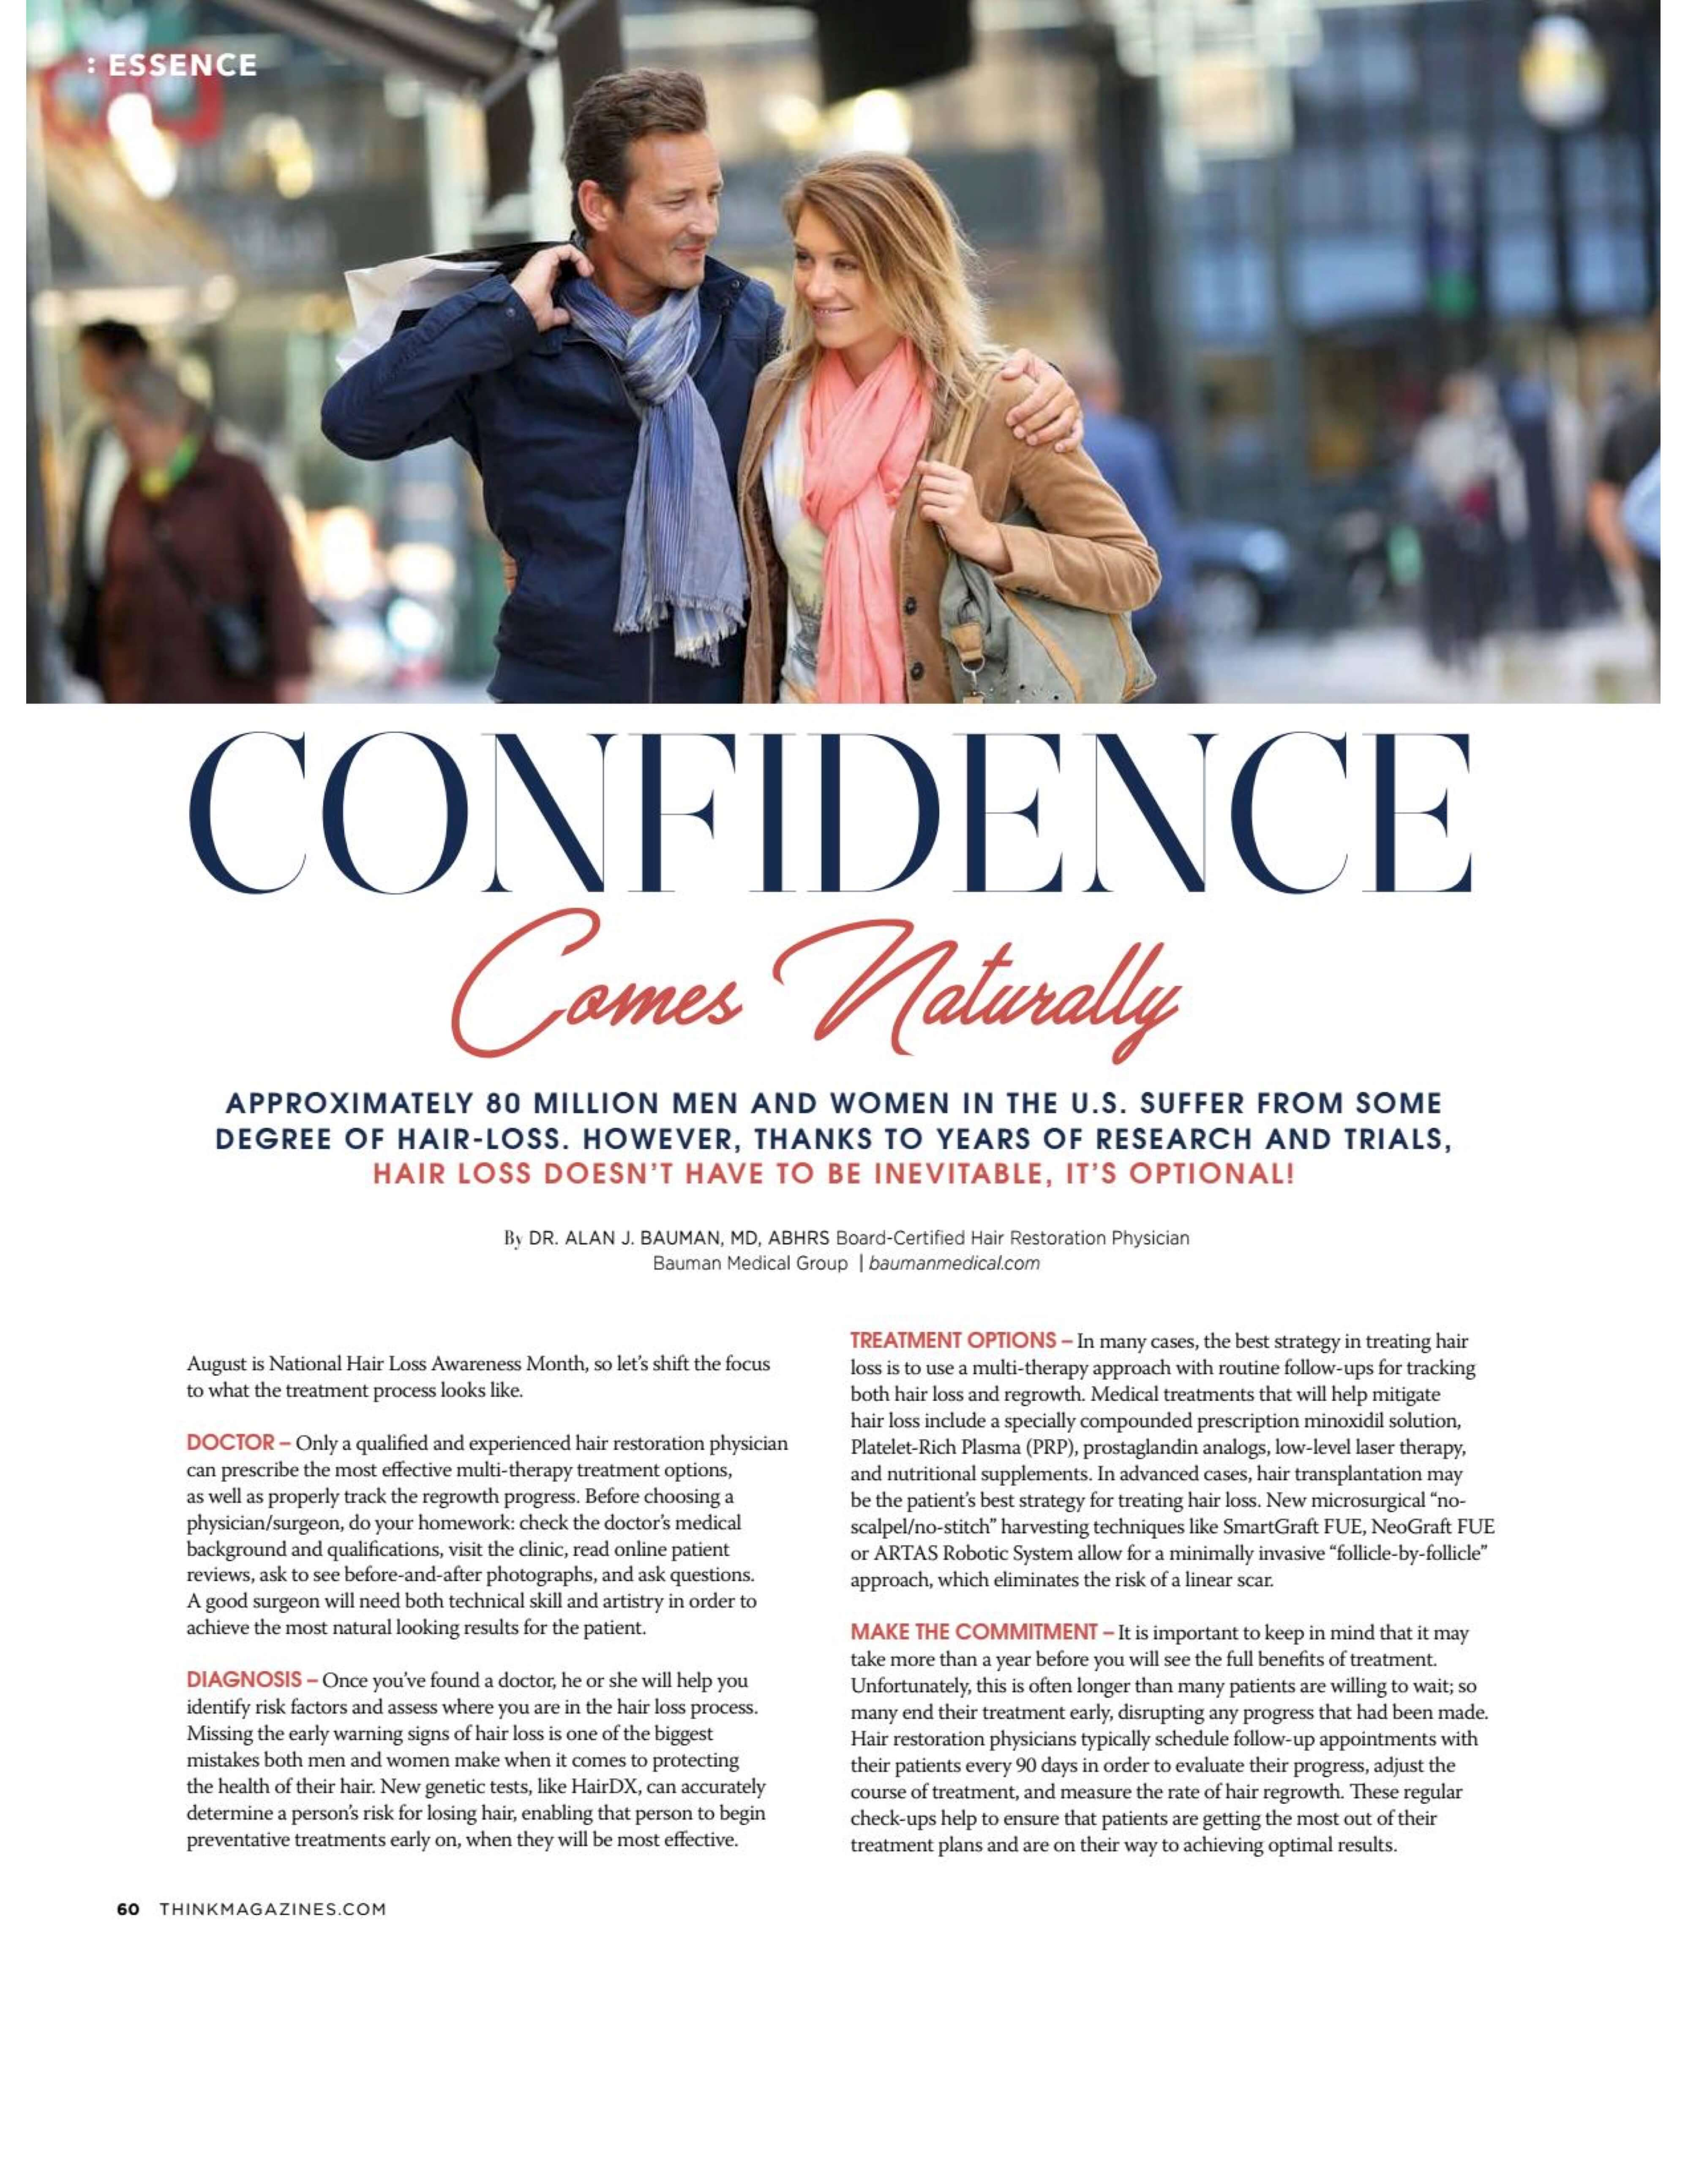 Think Magazine August Dralanbauman Hair Restoration Article 232x300 Confidence Comes Naturally W